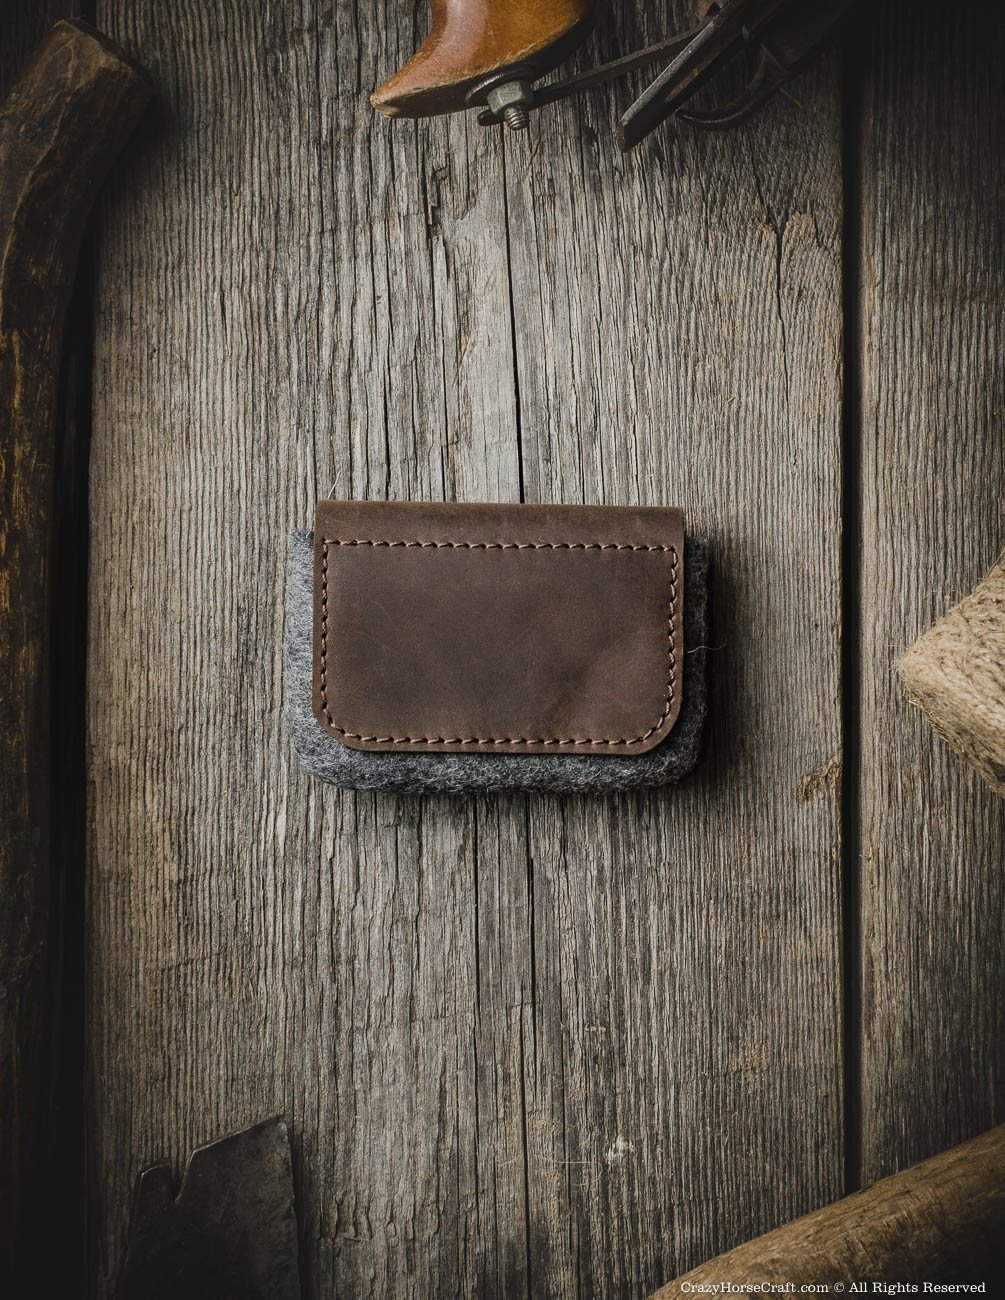 Leather vintage style business card holder, brown back